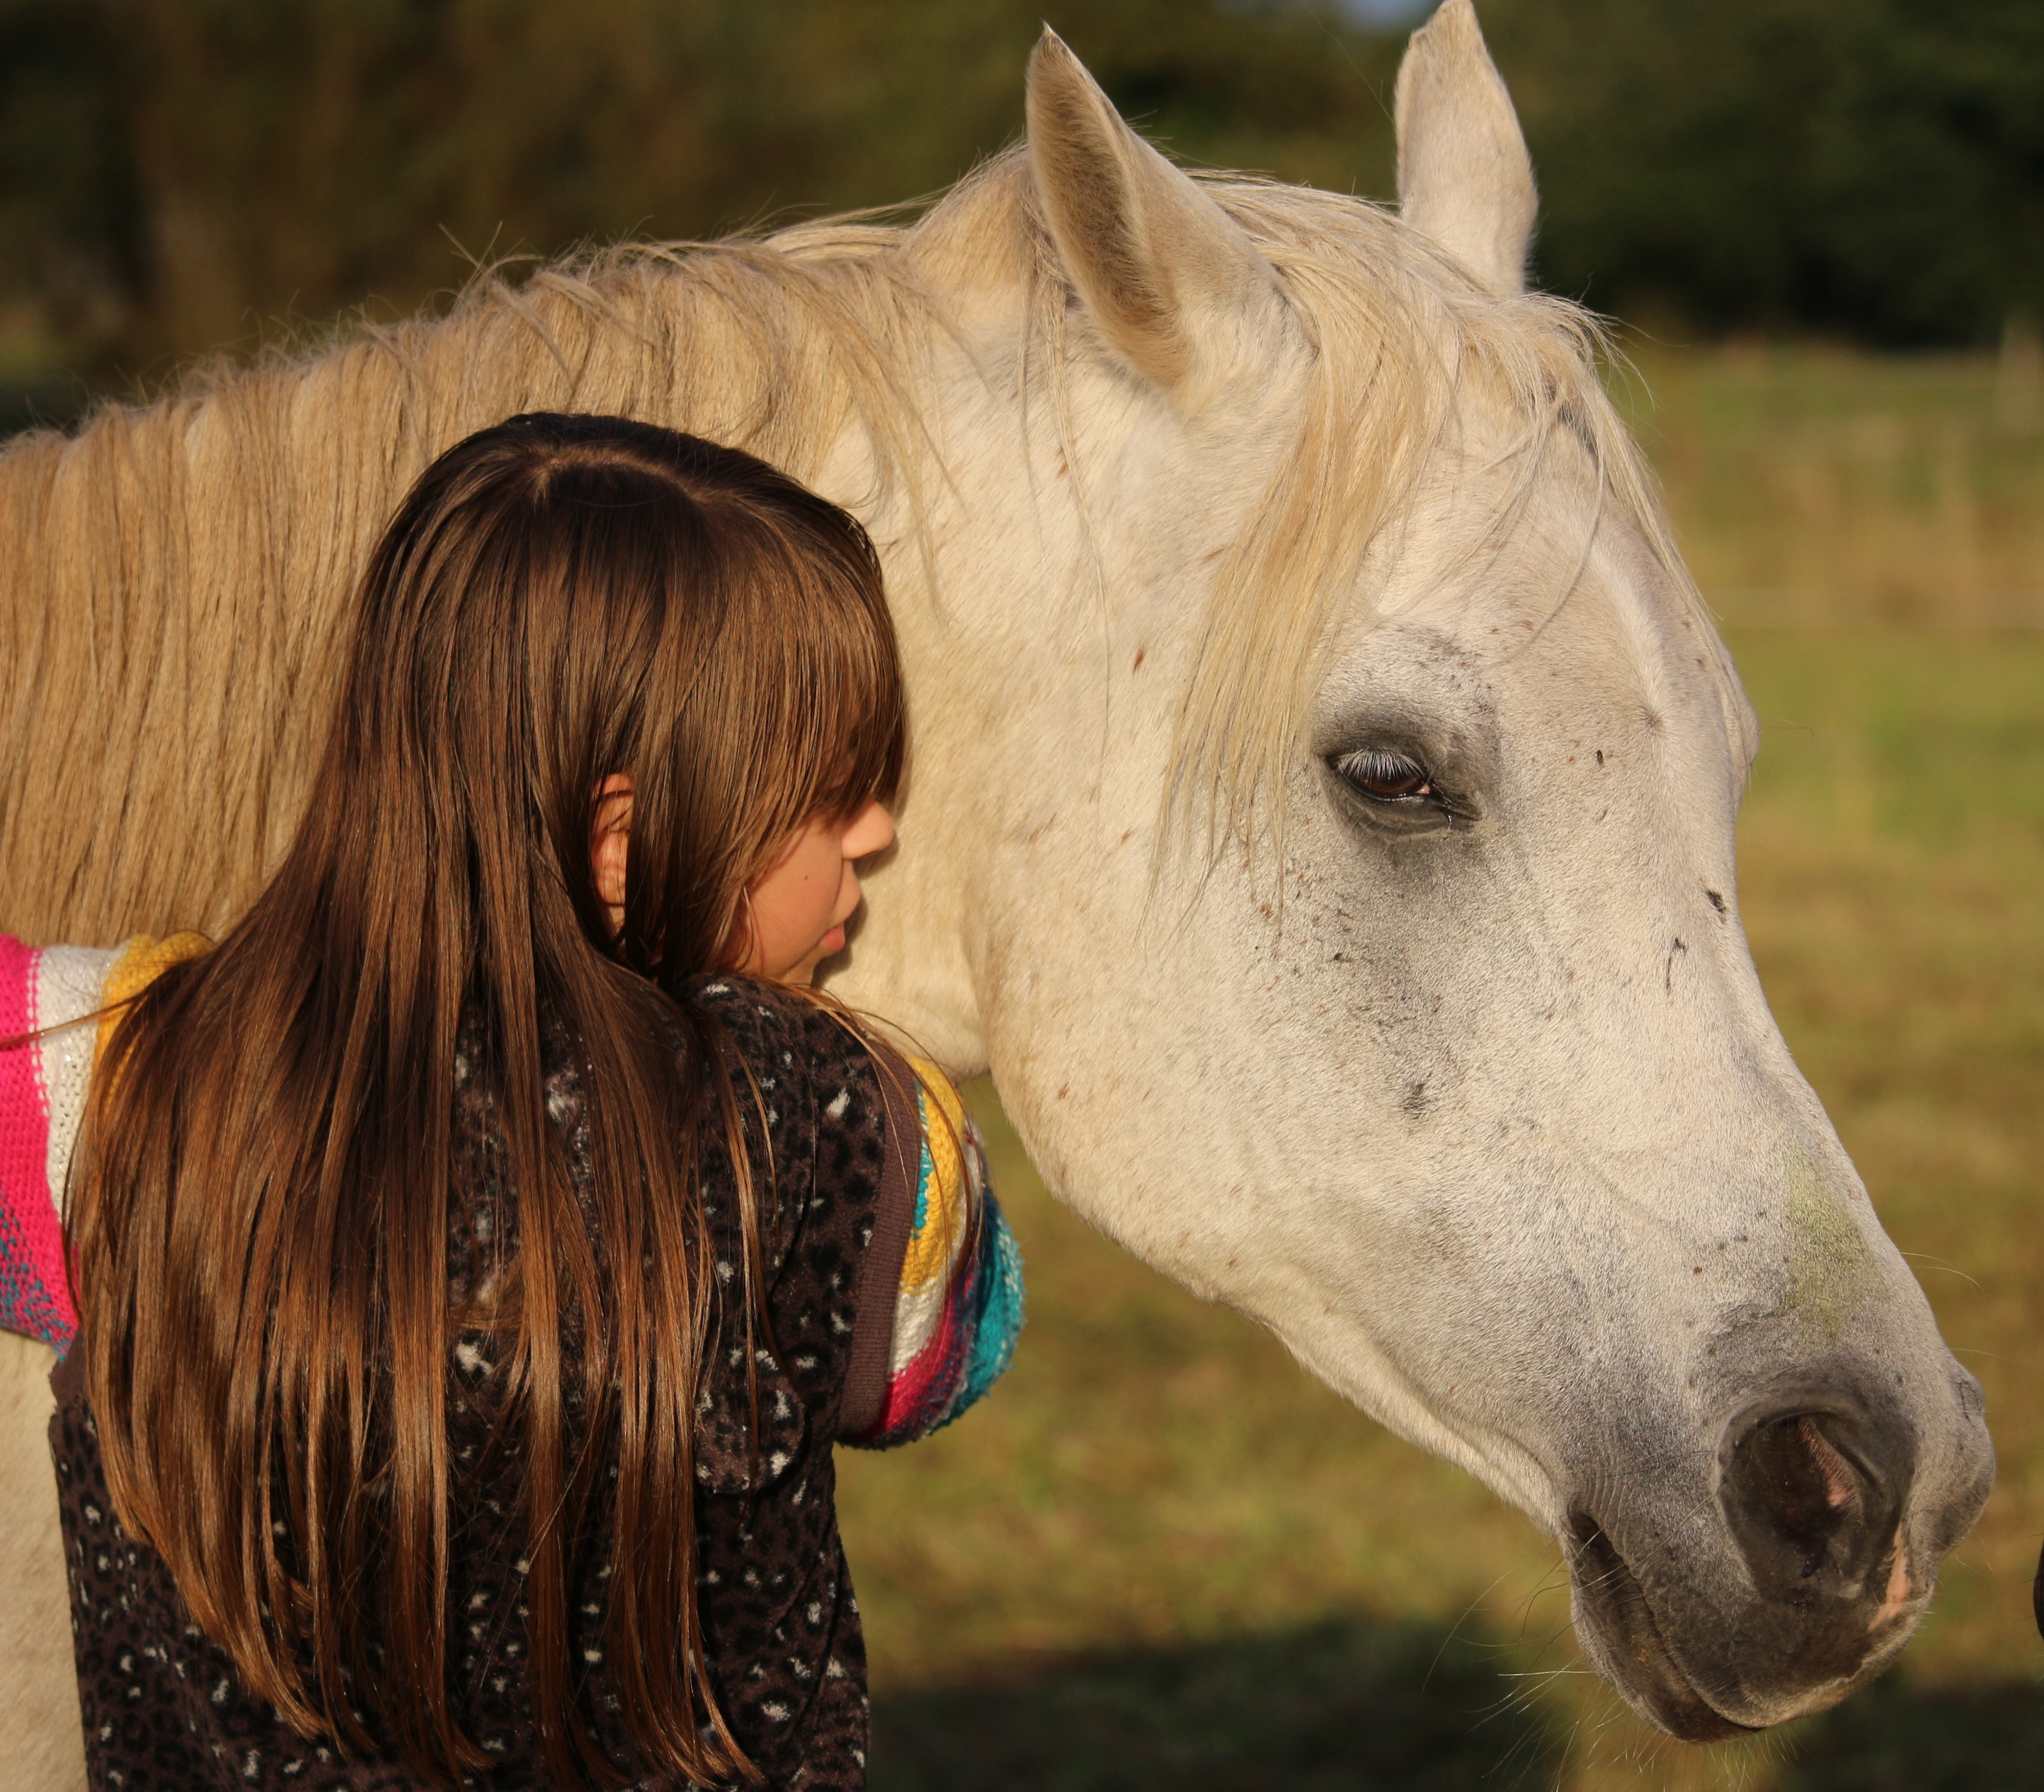 Girl and white horse free image